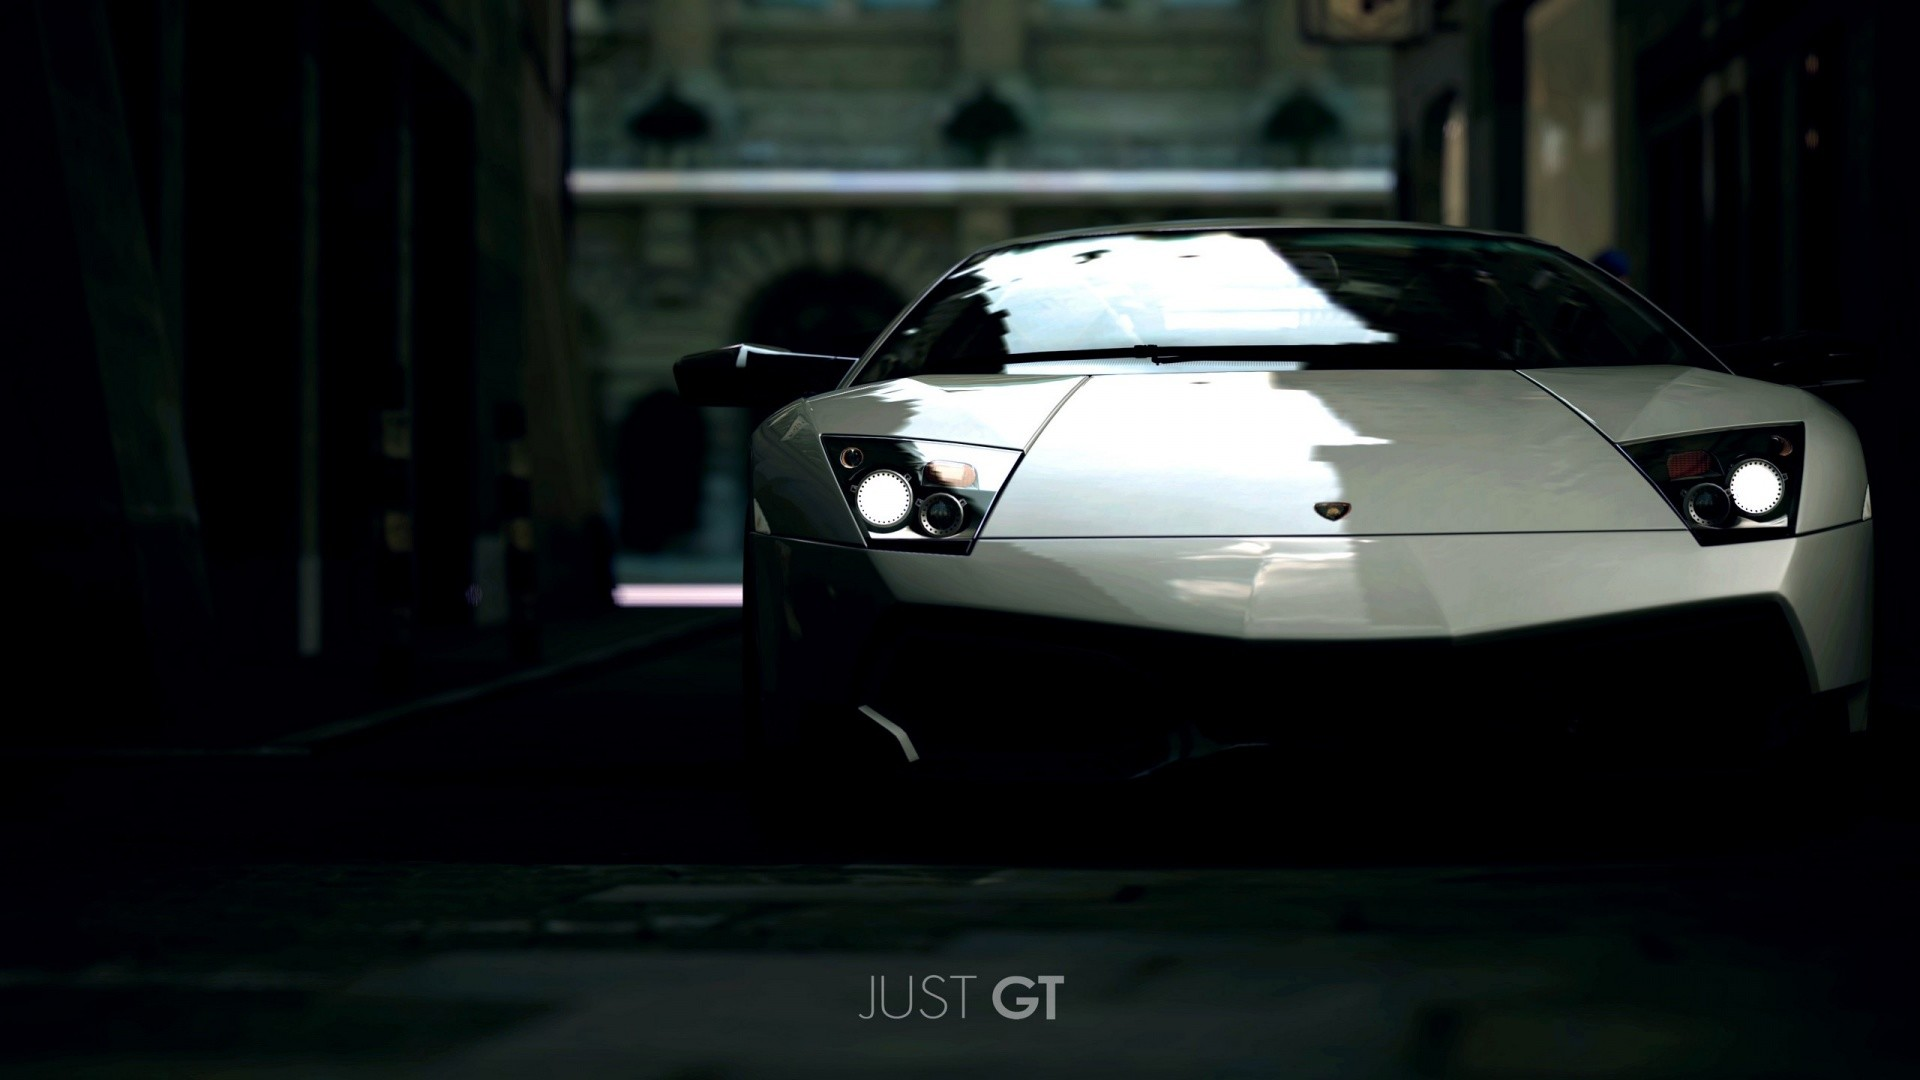 1920x1080 lamborghini gt car wallpaper